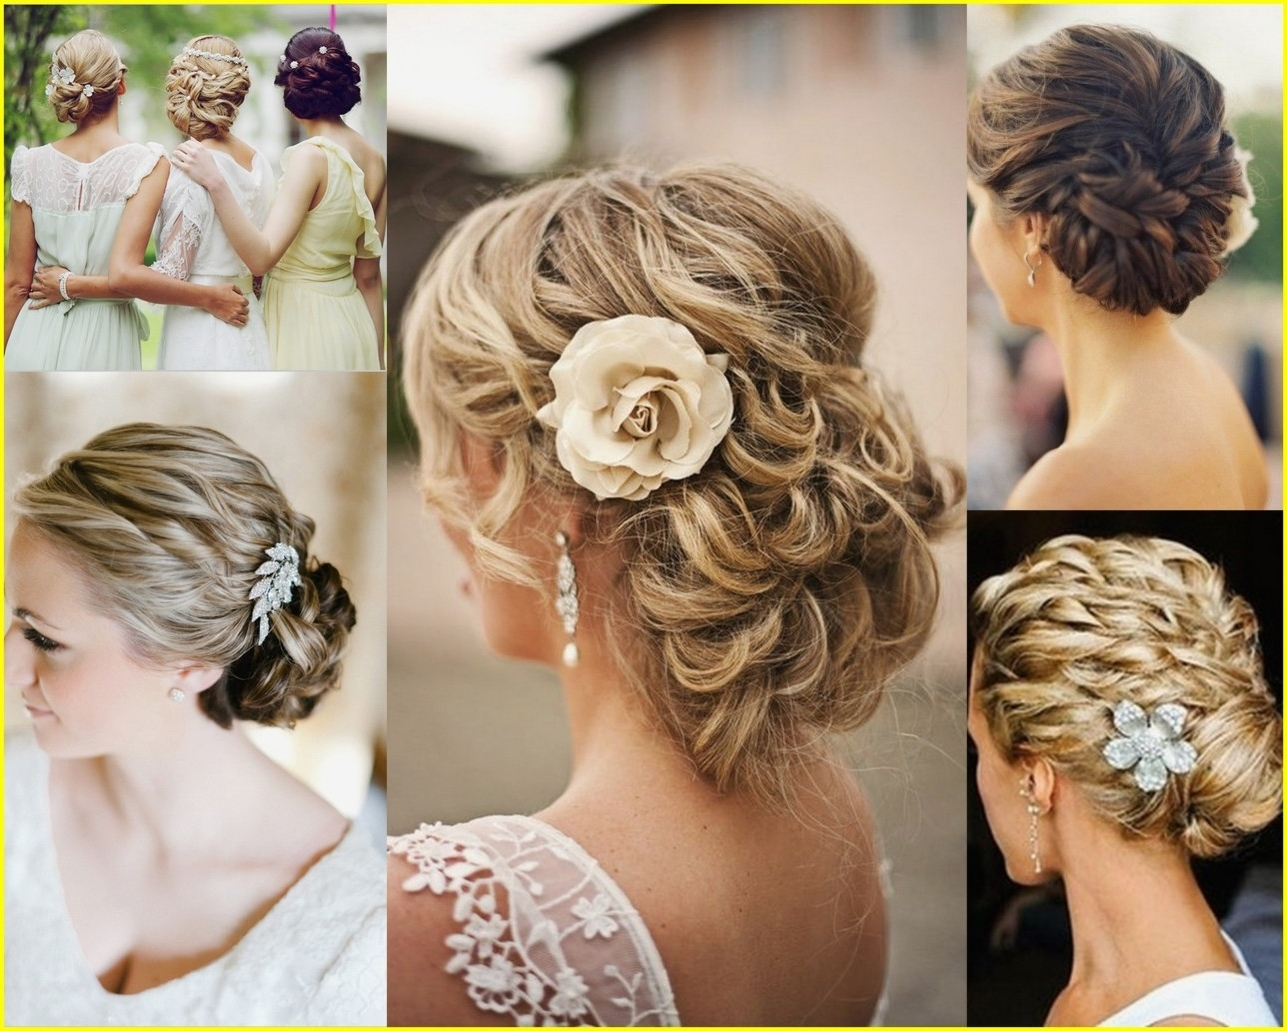 The Best Wedding Hairstyles Fresh Vintage For Long Hair Pict Updos Regarding 2017 Wedding Hairstyles For Vintage Long Hair (View 7 of 15)